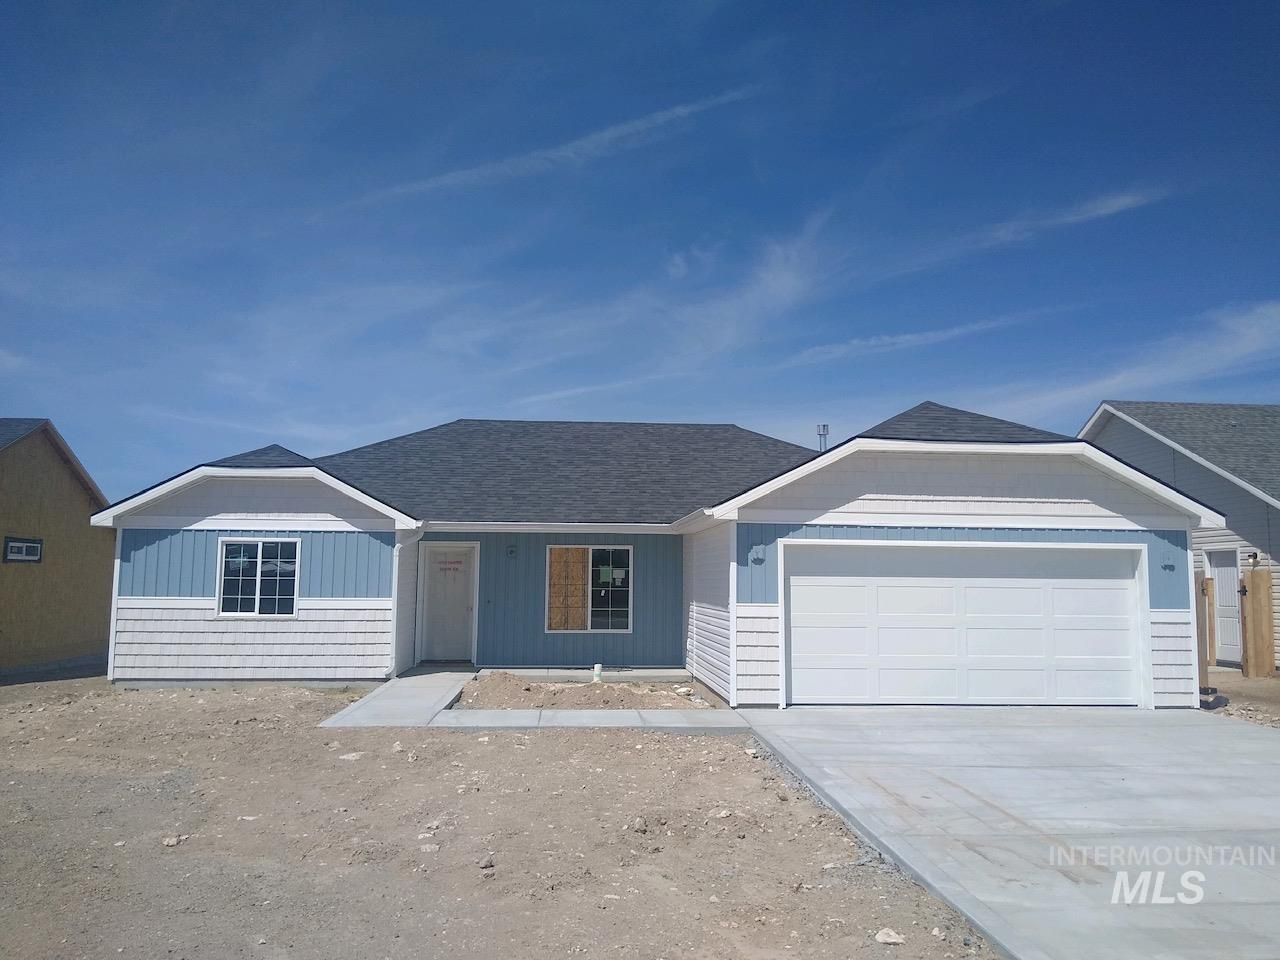 1014 Homestead Property Photo - Buhl, ID real estate listing